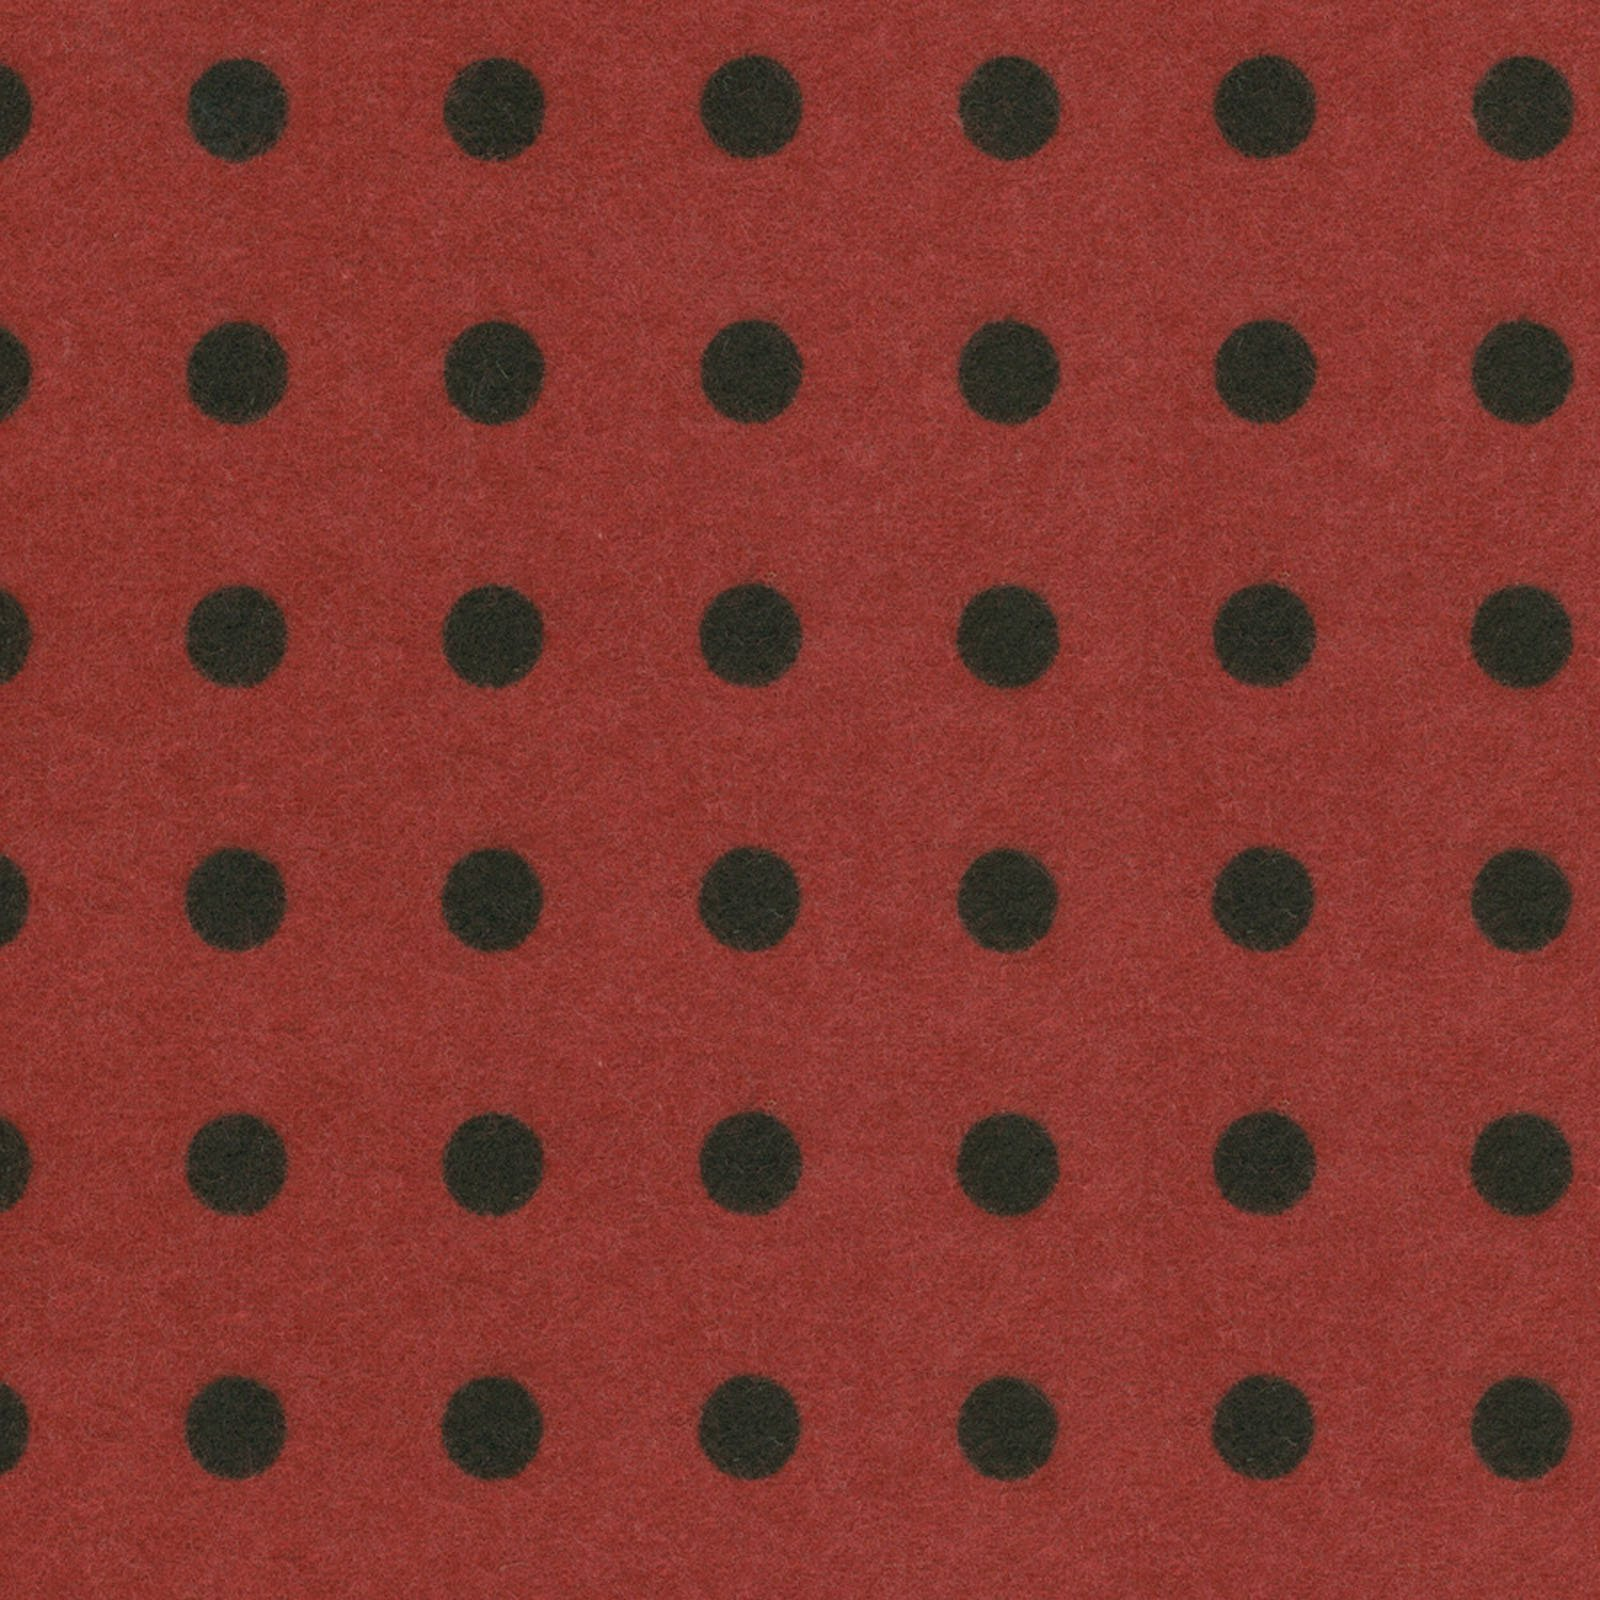 Large Polka Dots - Red - Woolies Flannel